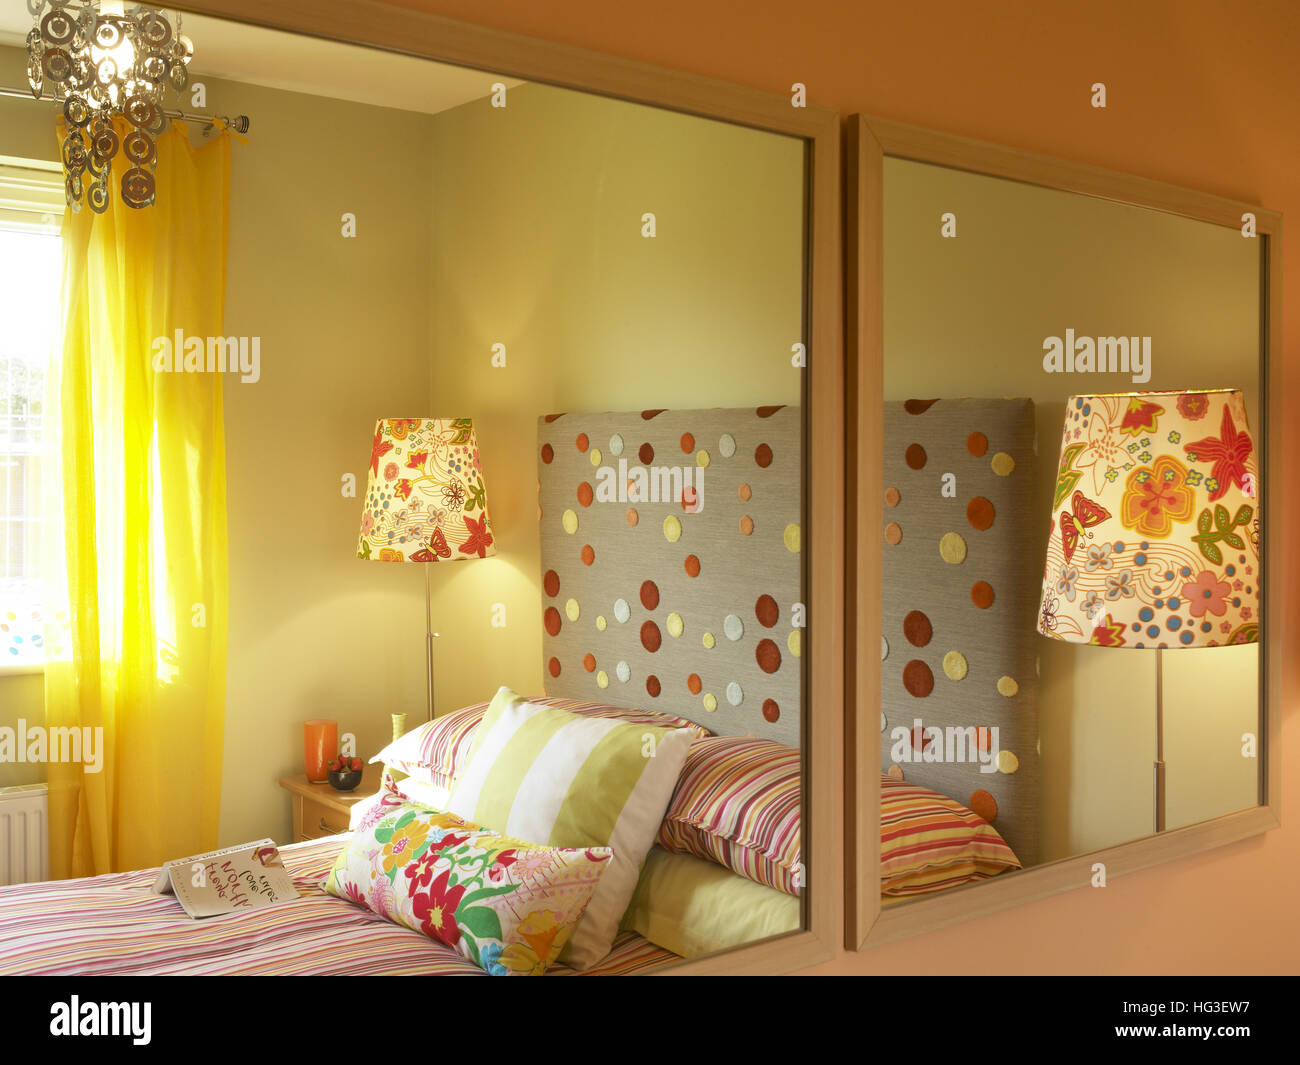 Bedroom reflected in mirrors - Stock Image